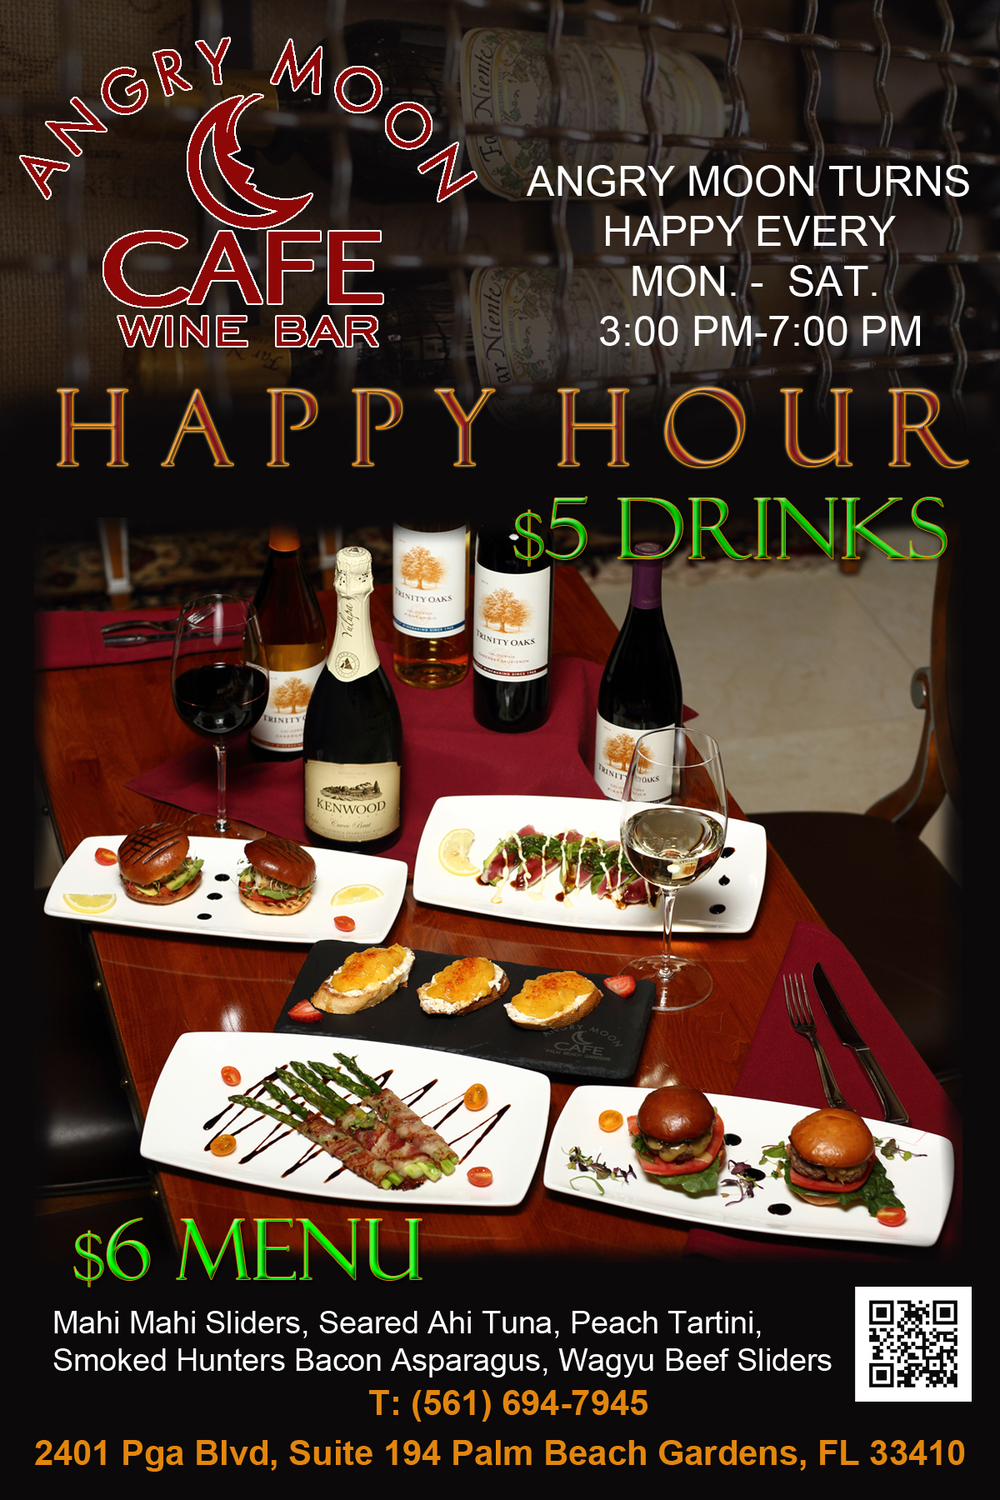 Angry Moon Cafe - Happy Hour - $5 Wine & $6 Menu